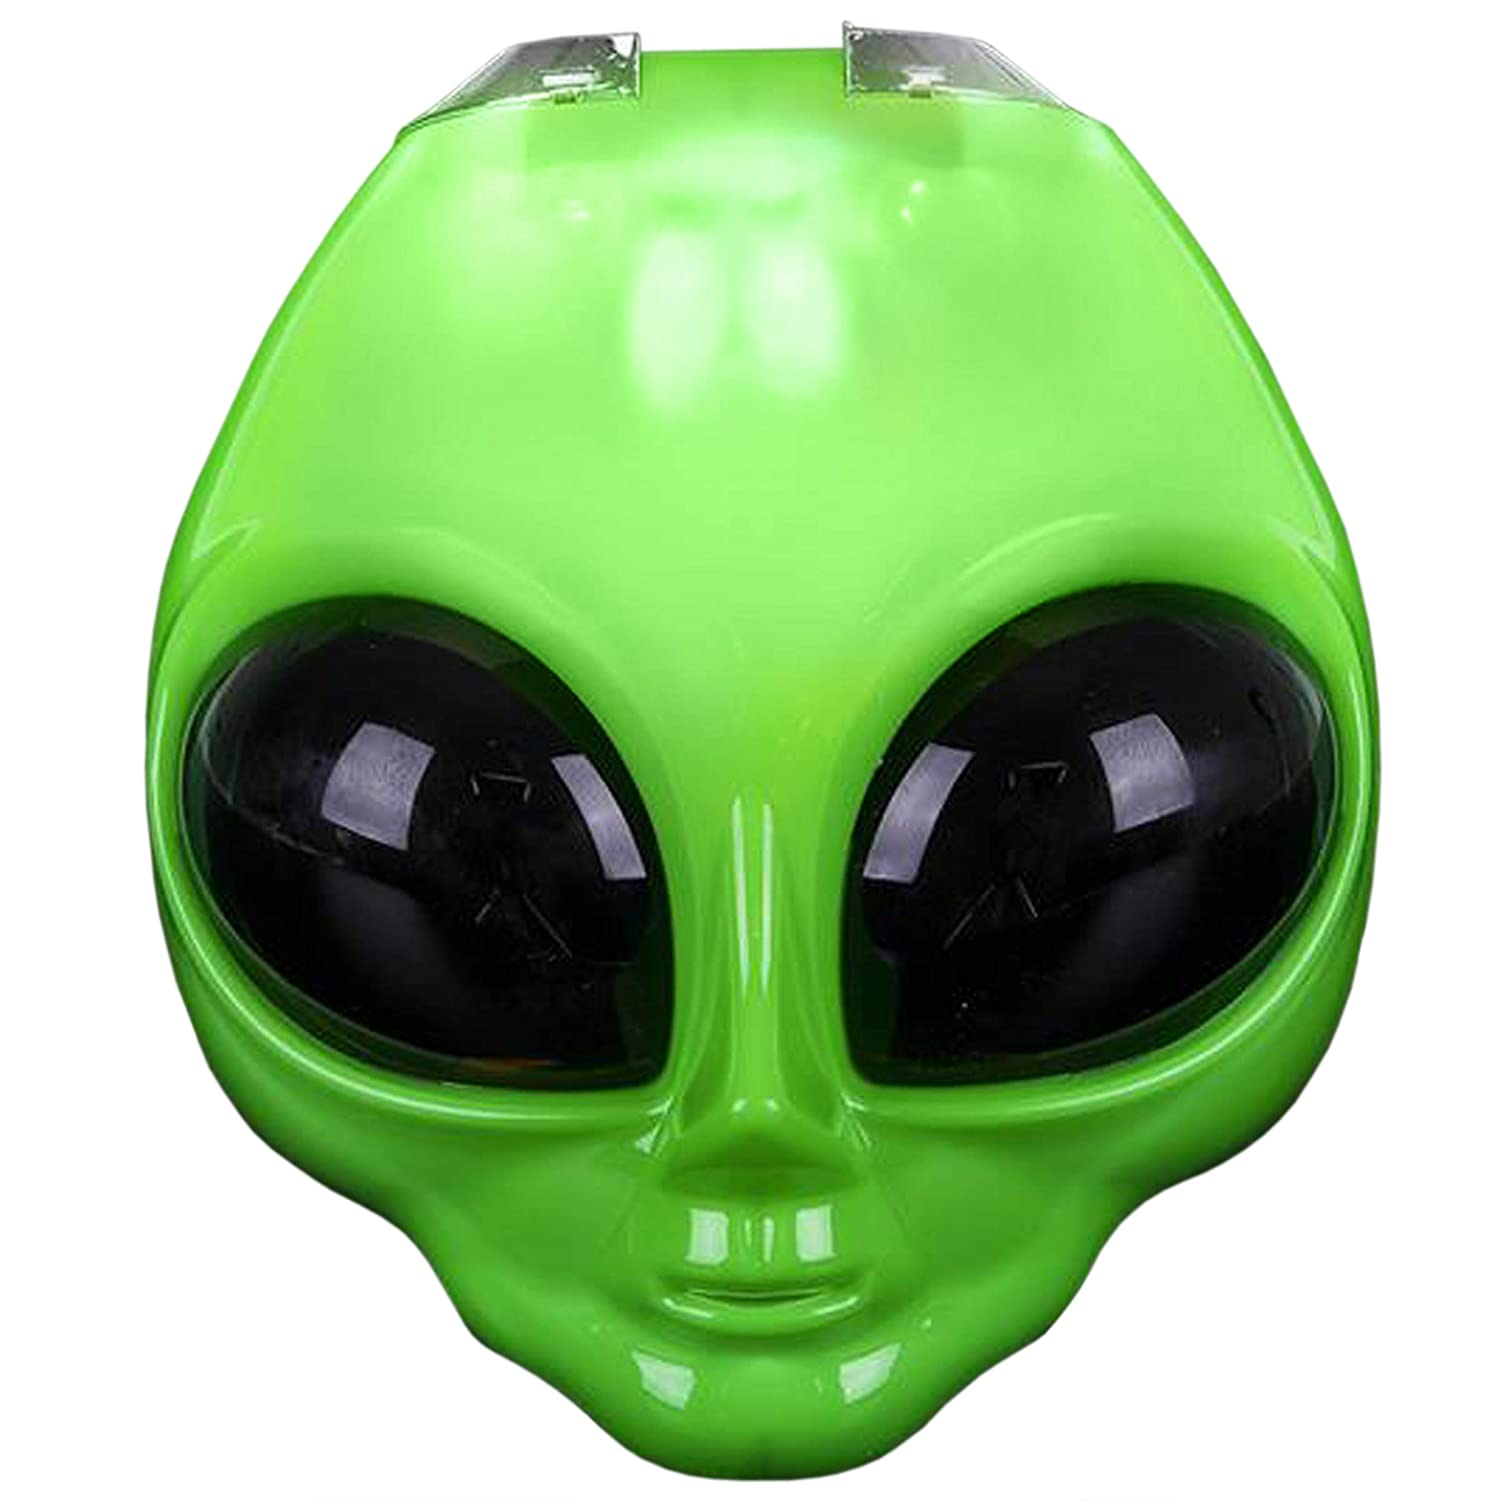 Rhode Island Novelty LED Light Up Flip Green Alien Space Costume Mask